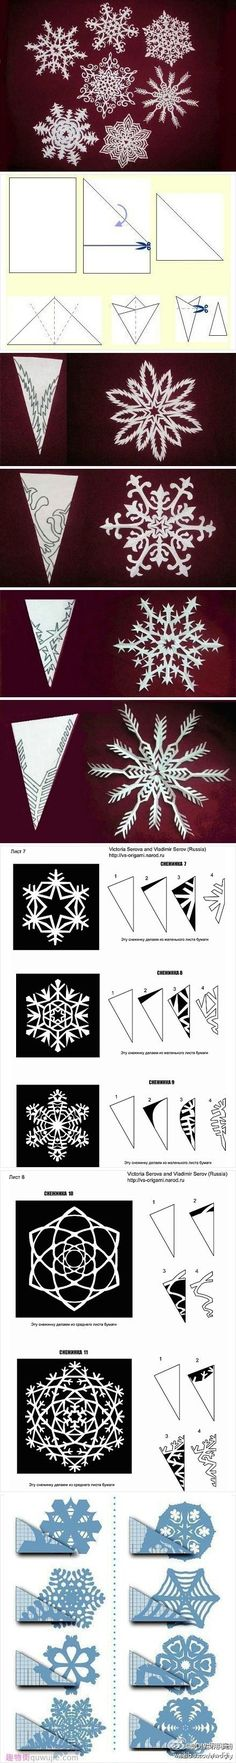 Paper snow flakes tutorial